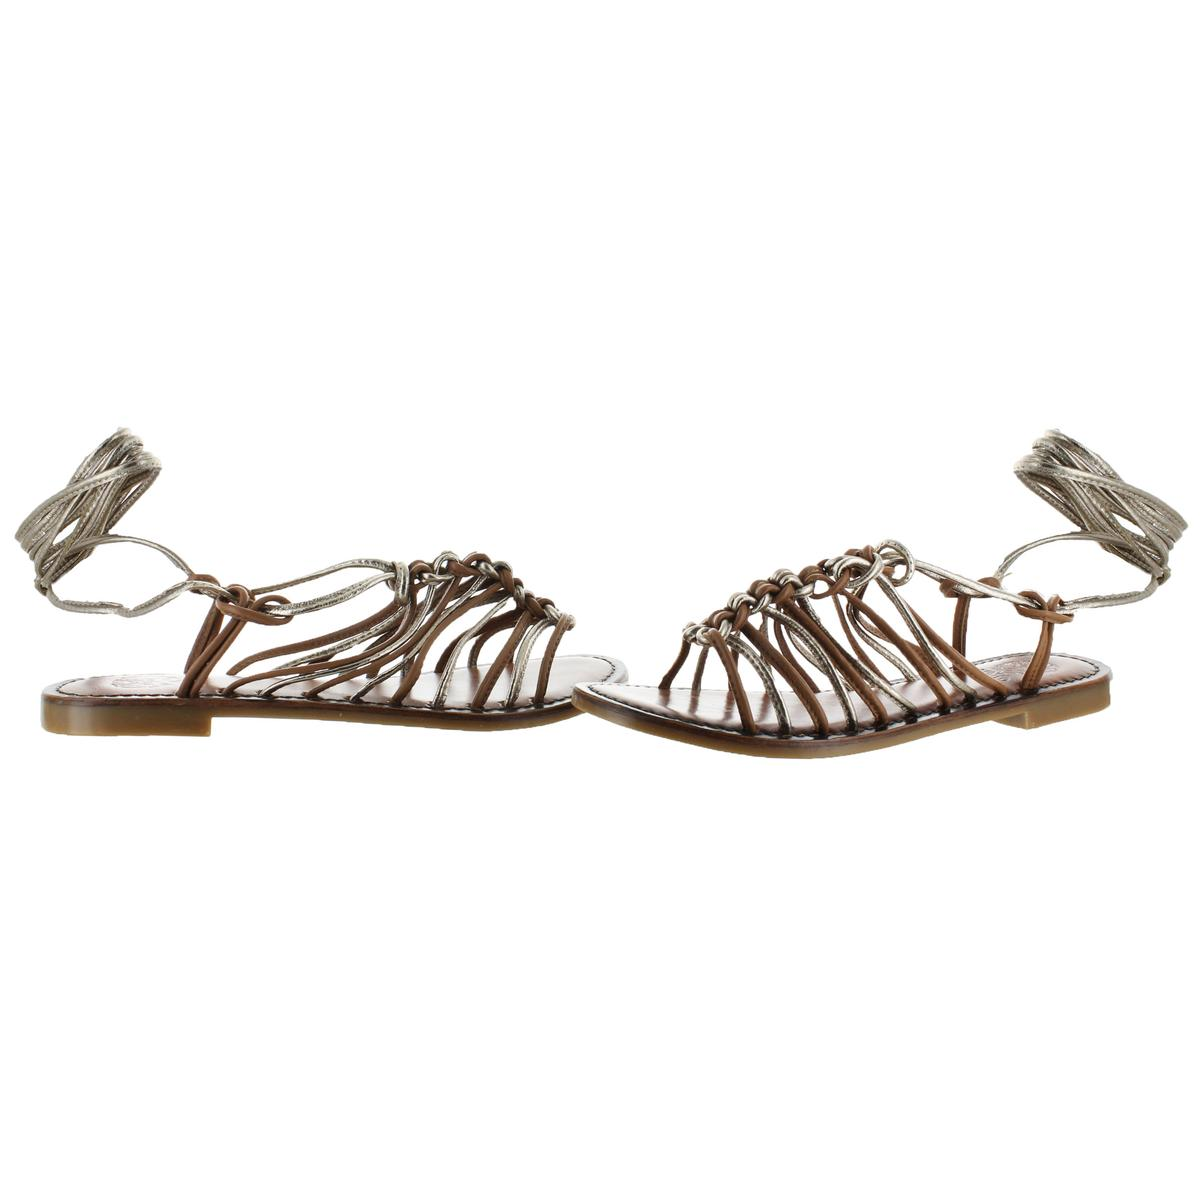 Vince-Camuto-Layla-Women-039-s-Leather-Strappy-Braided-Trendy-Gladiator-Sandal-Shoes thumbnail 4